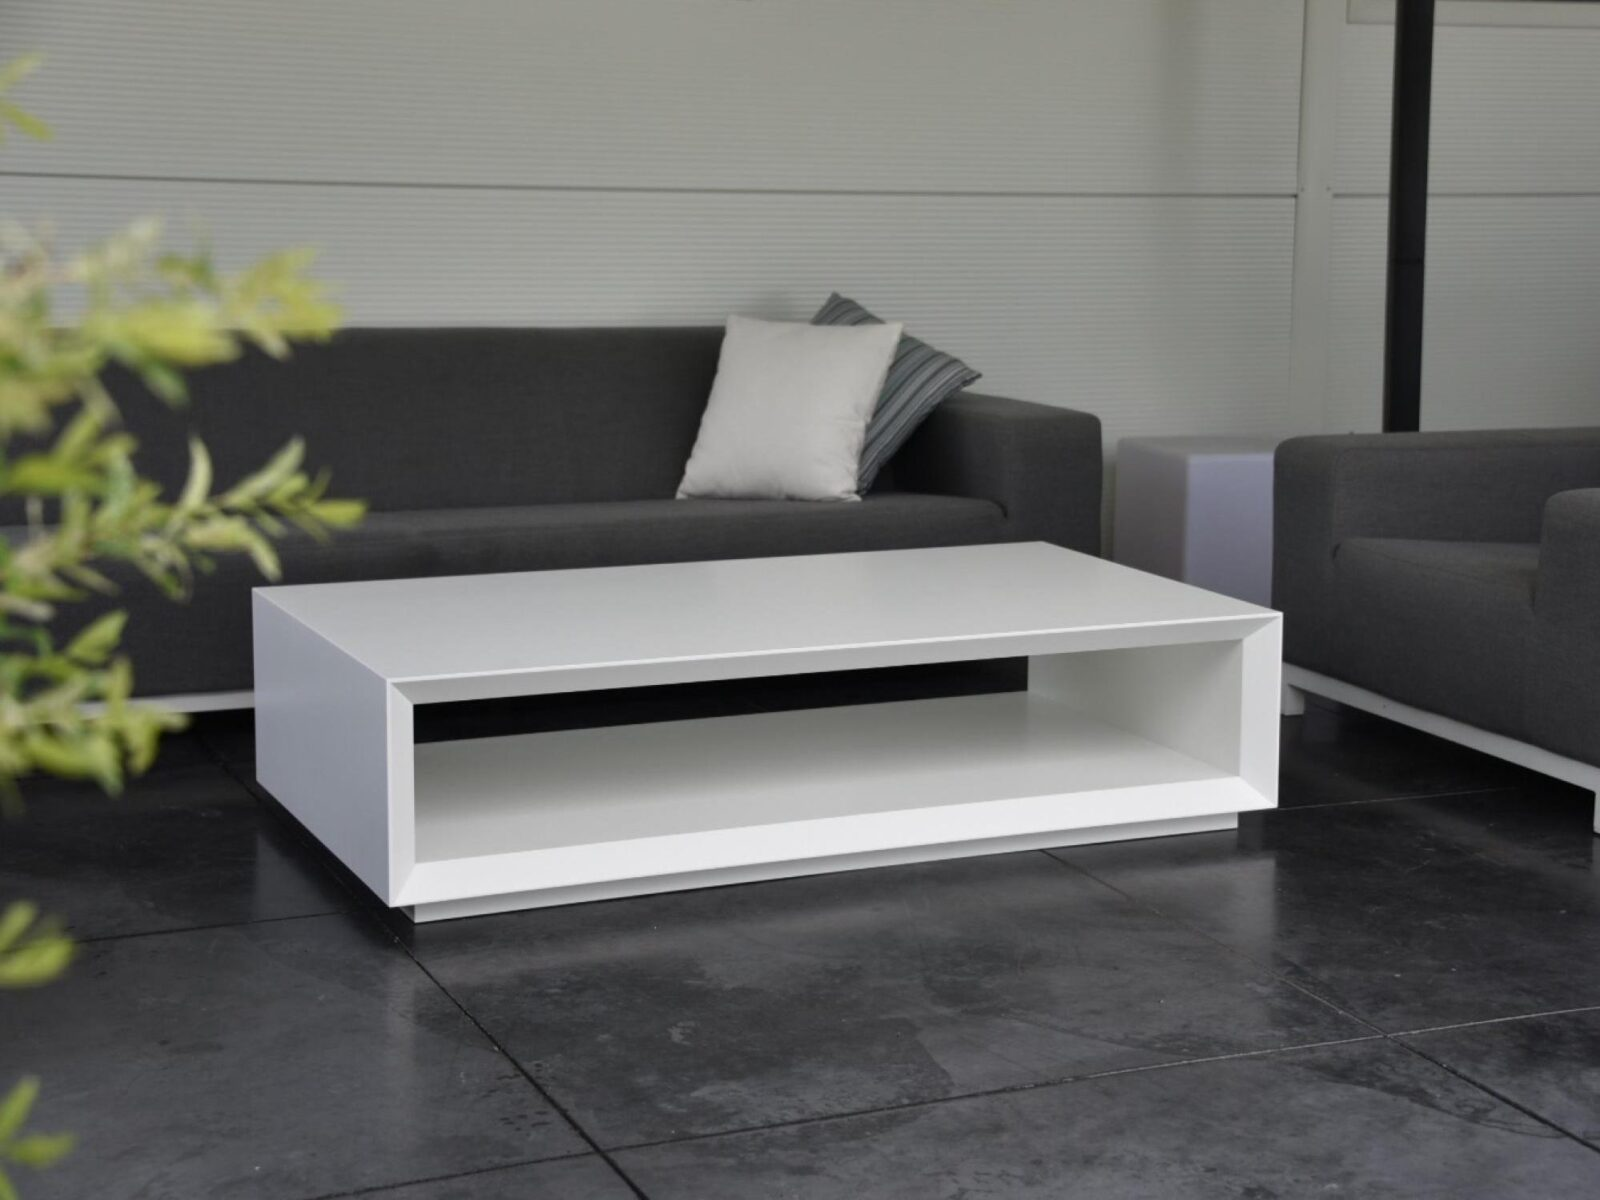 Inside Design Salontafel.Furniture Made Of Artificial Stone To Buy A Kitchen Table From An